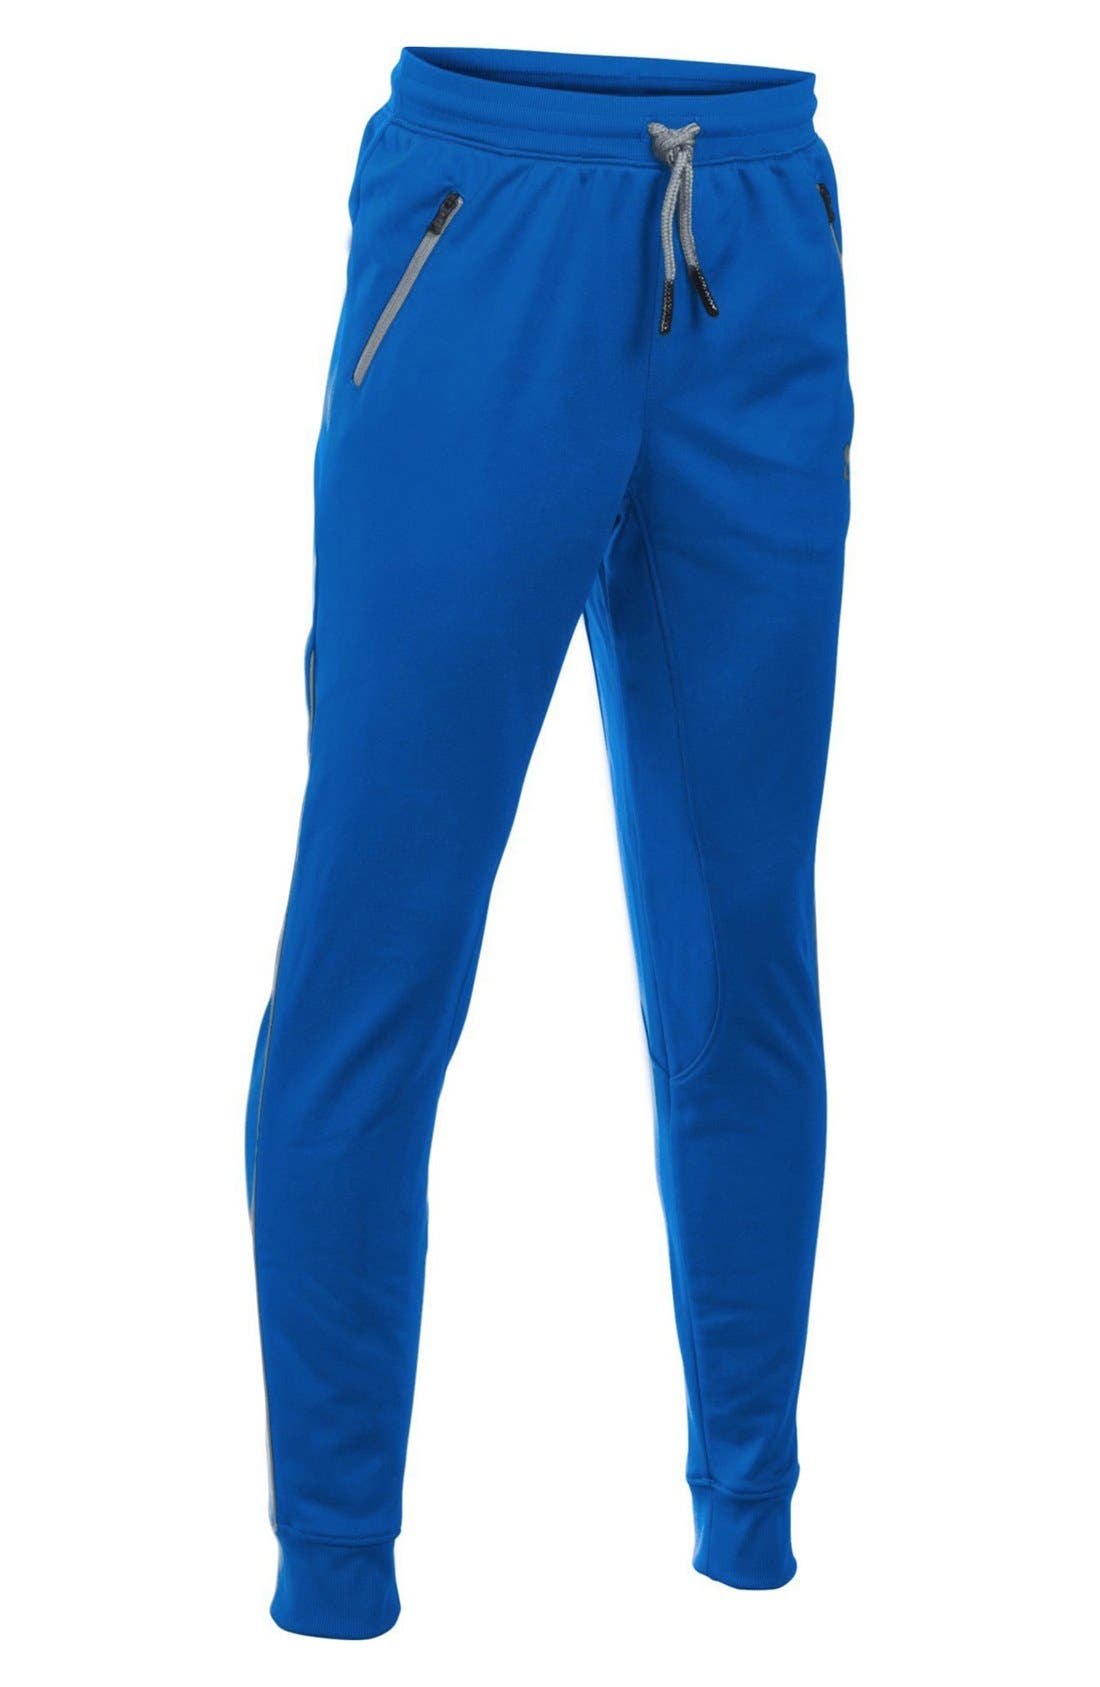 'Pennant' Tapered Pants,                         Main,                         color, Ultra Blue/ Black